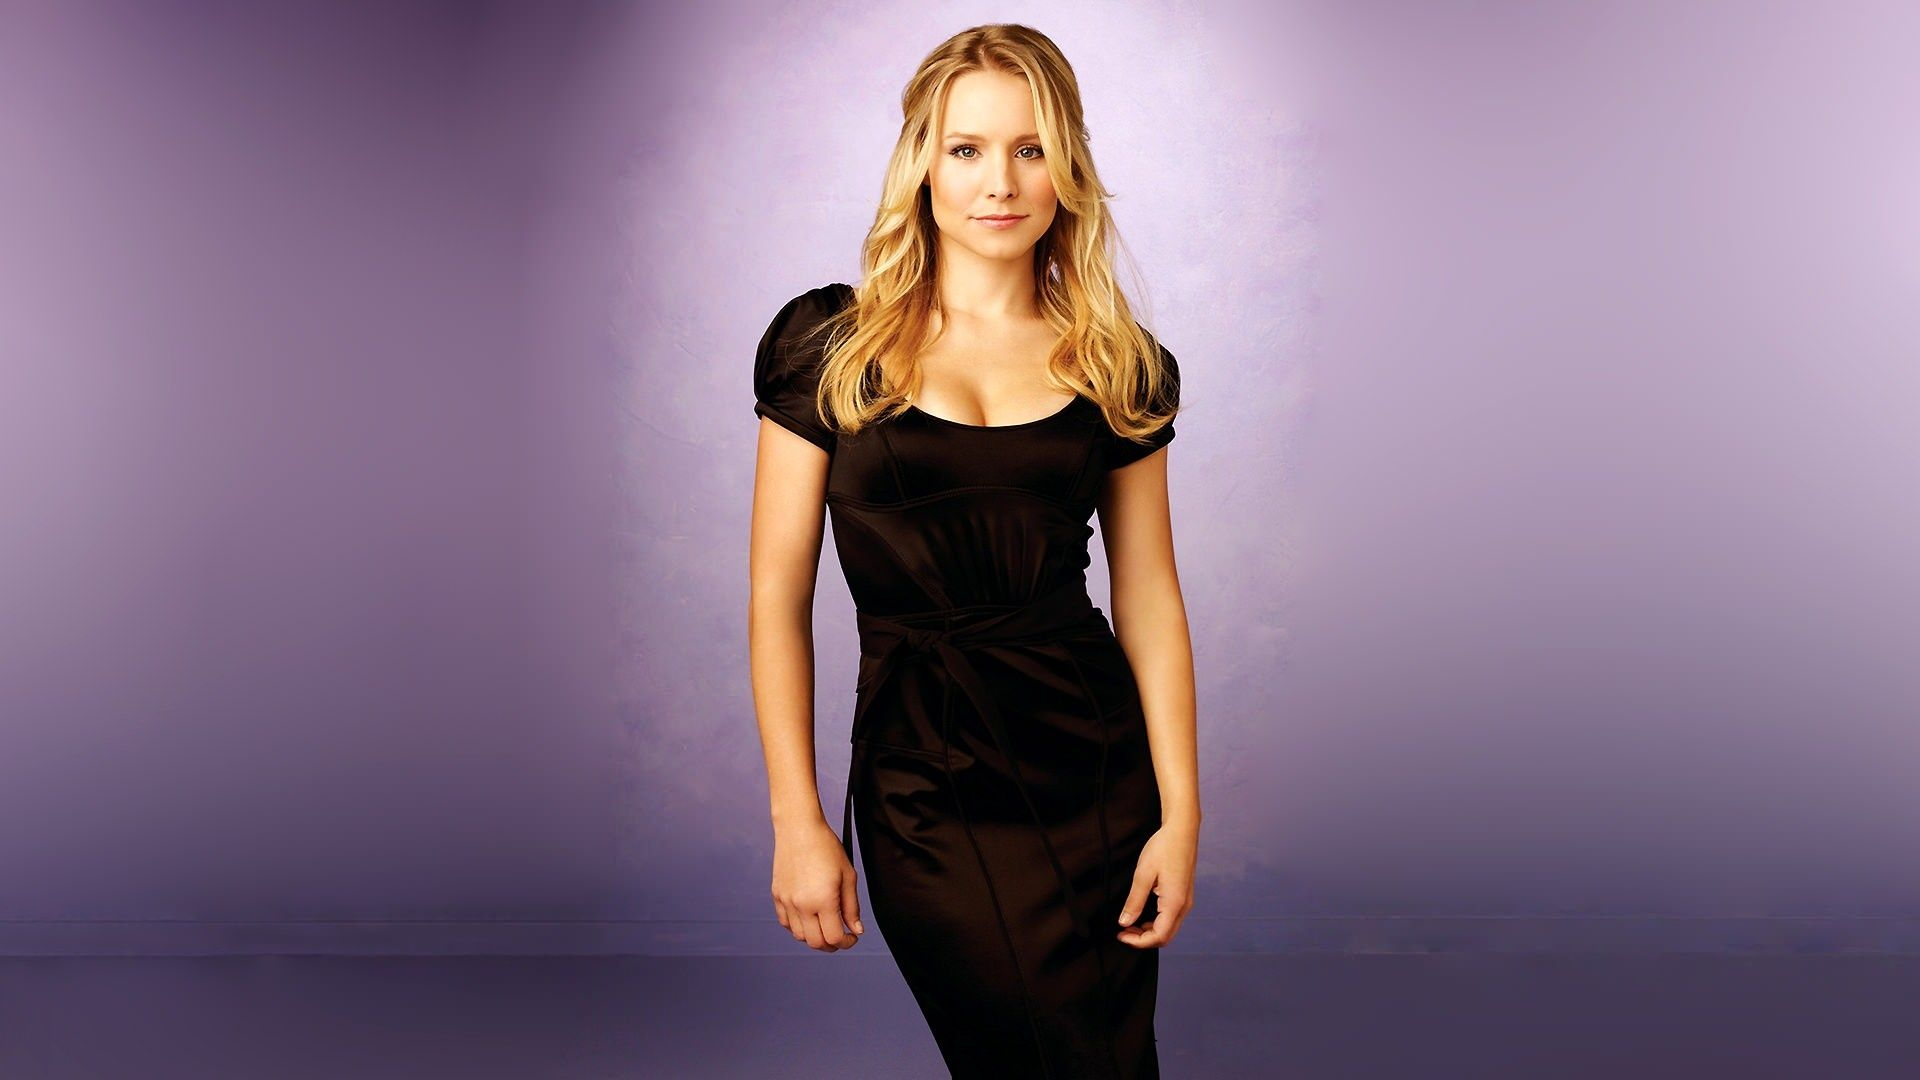 Kristen Bell desktop wallpaper